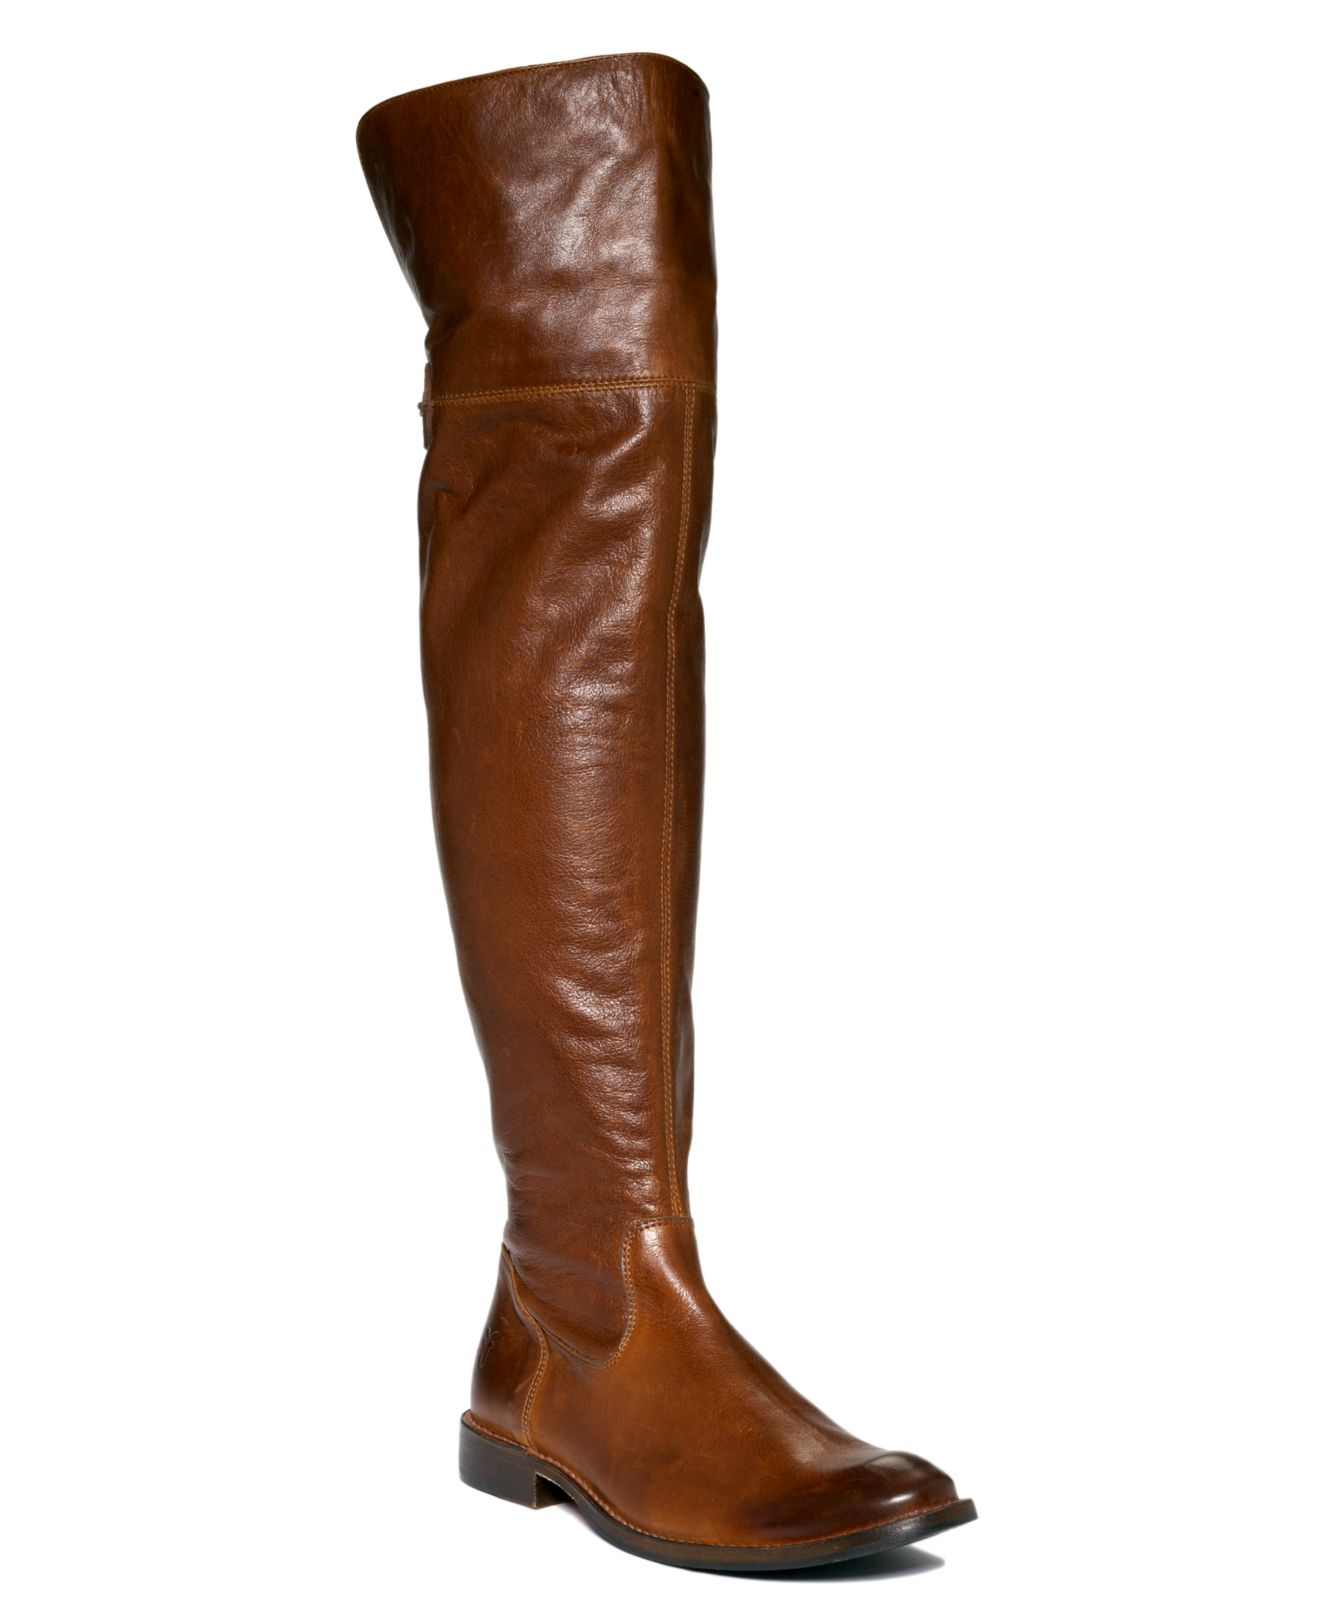 Frye Shirley Over The Knee Riding Boots in Brown | Lyst